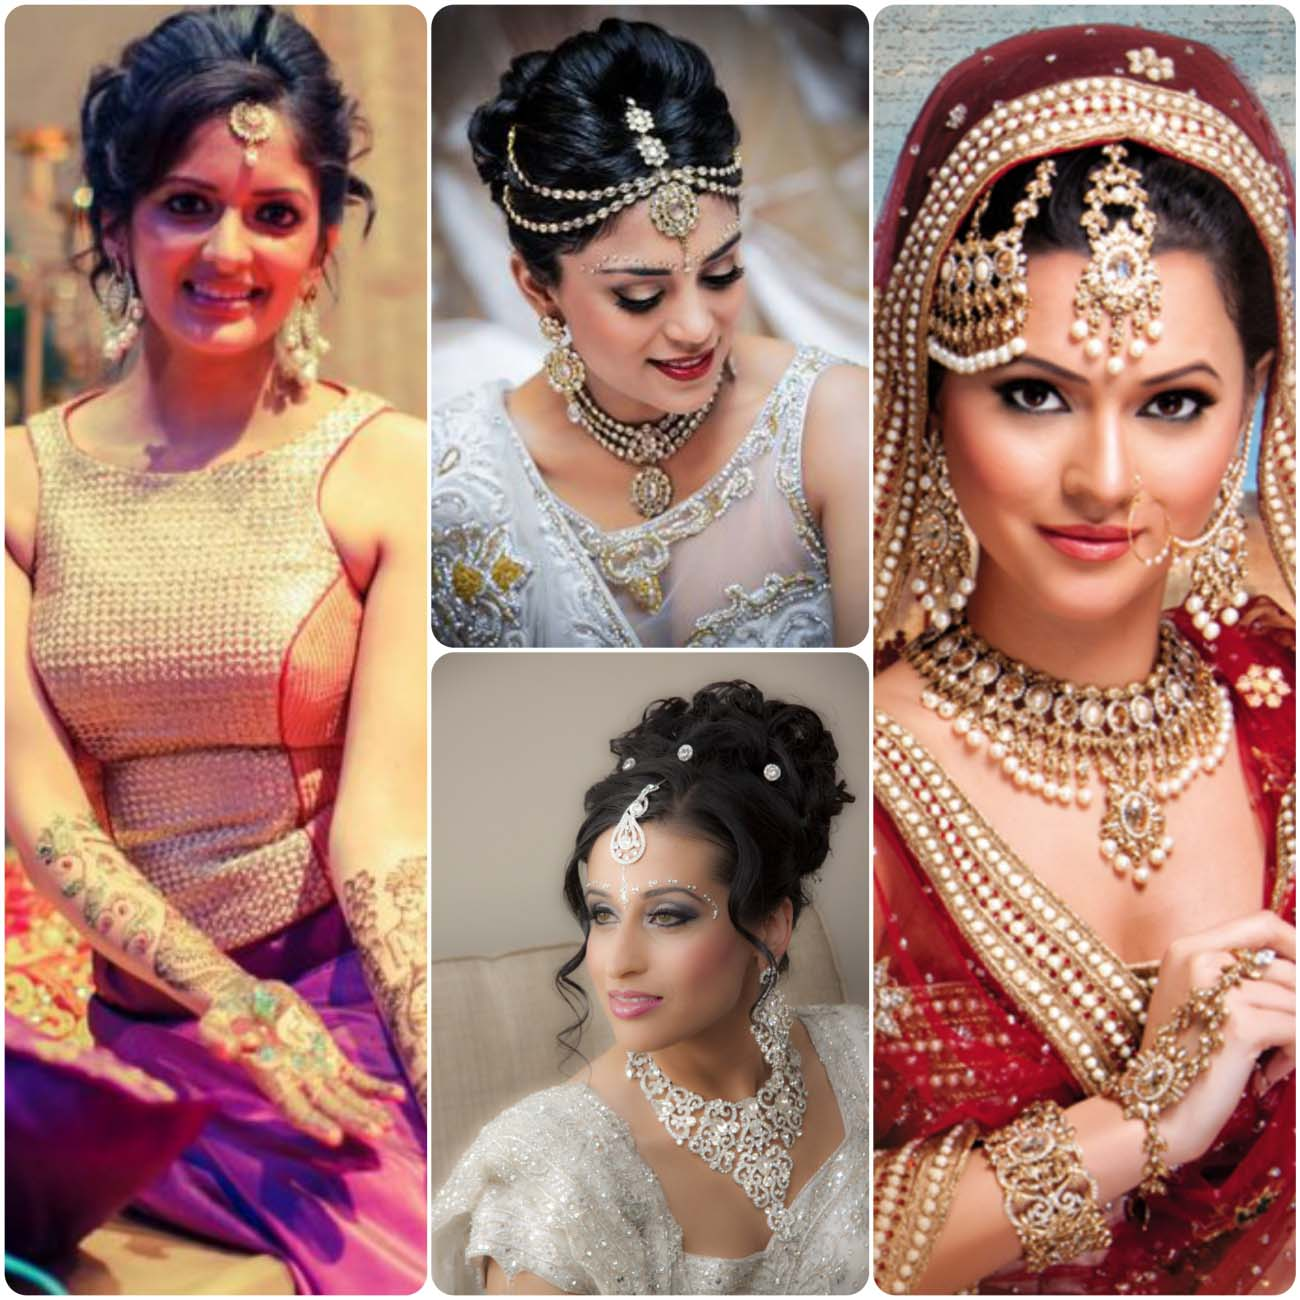 Wedding Hairstyle For Kerala Bride: Indian Wedding Hairstyles For Brides 2017-2018